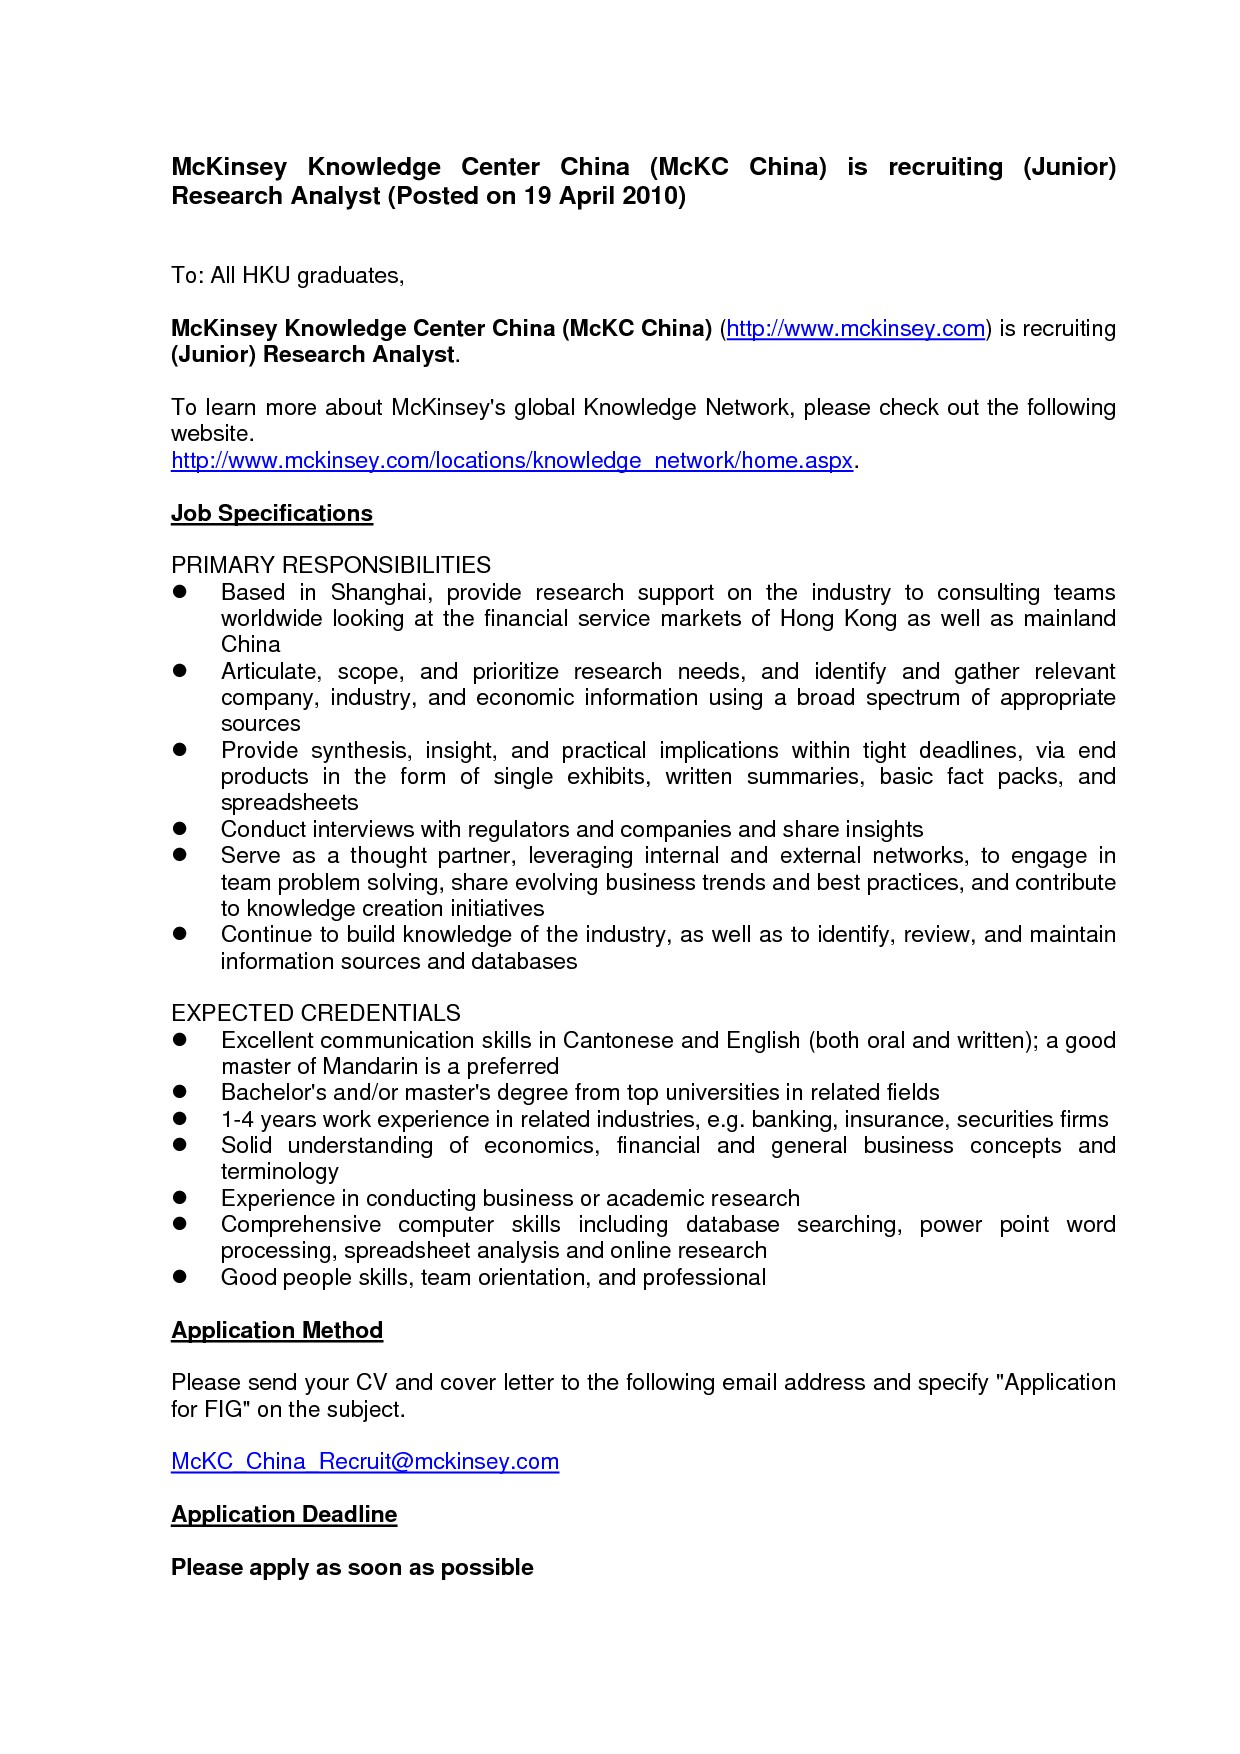 New Employee Offer Letter Template - How to Write A Cover Letter for Employment 27 Appointment Letter